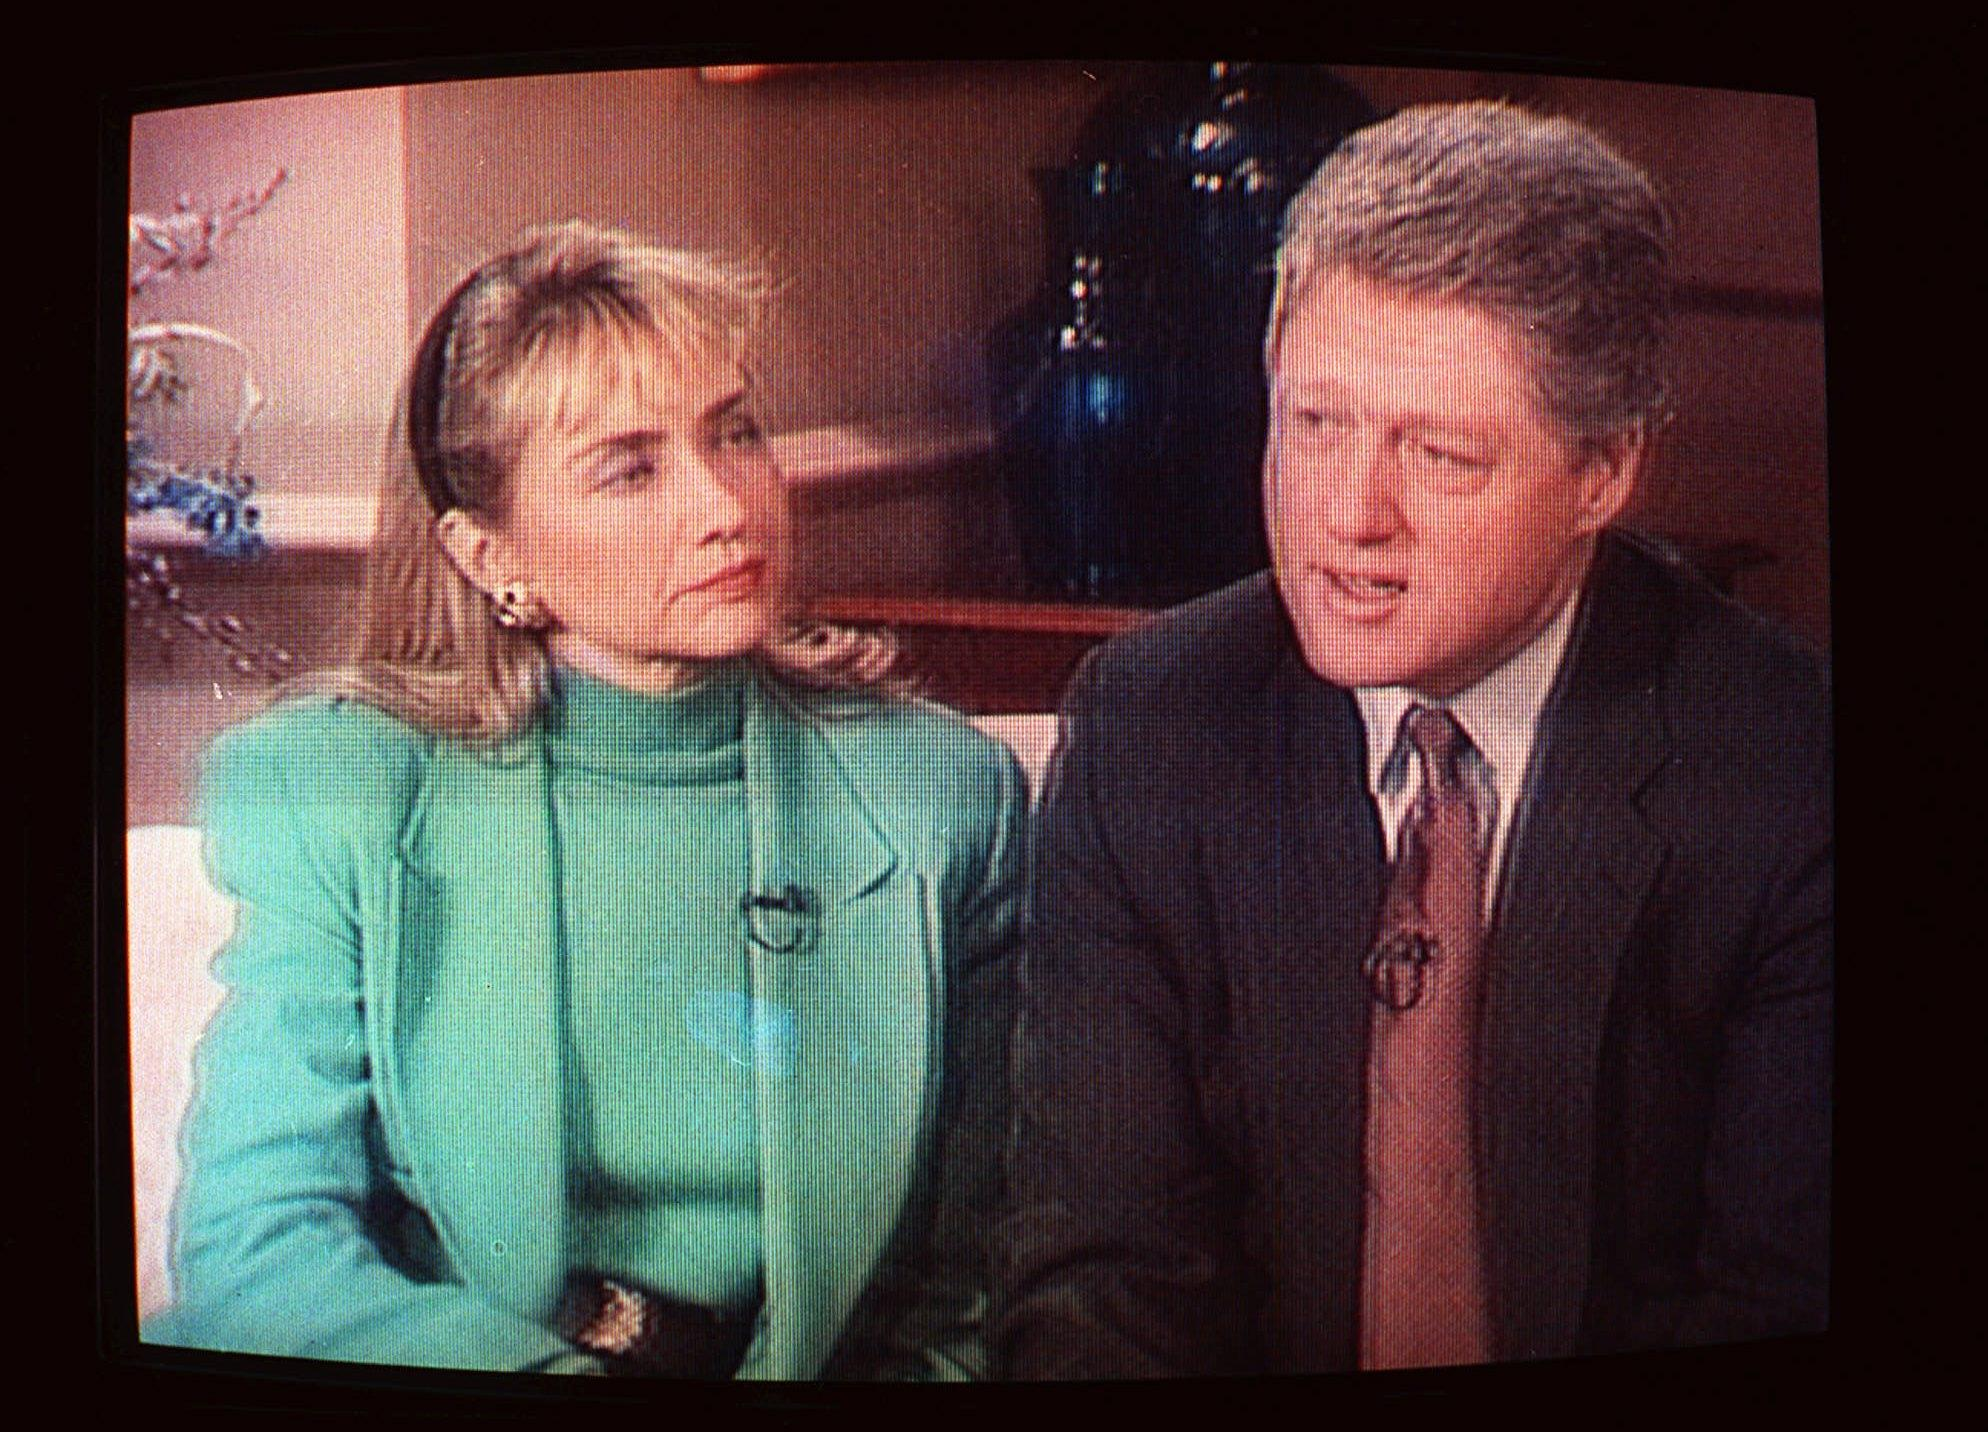 the life and career of bill clinton Bill clinton's full name is bill's half-brother roger clinton jr was born in 1962, when bill was a senior student in high school, he was he was soon to encounter major scandals involving his personal life and reputation in 1998, bill clinton became the second ever.